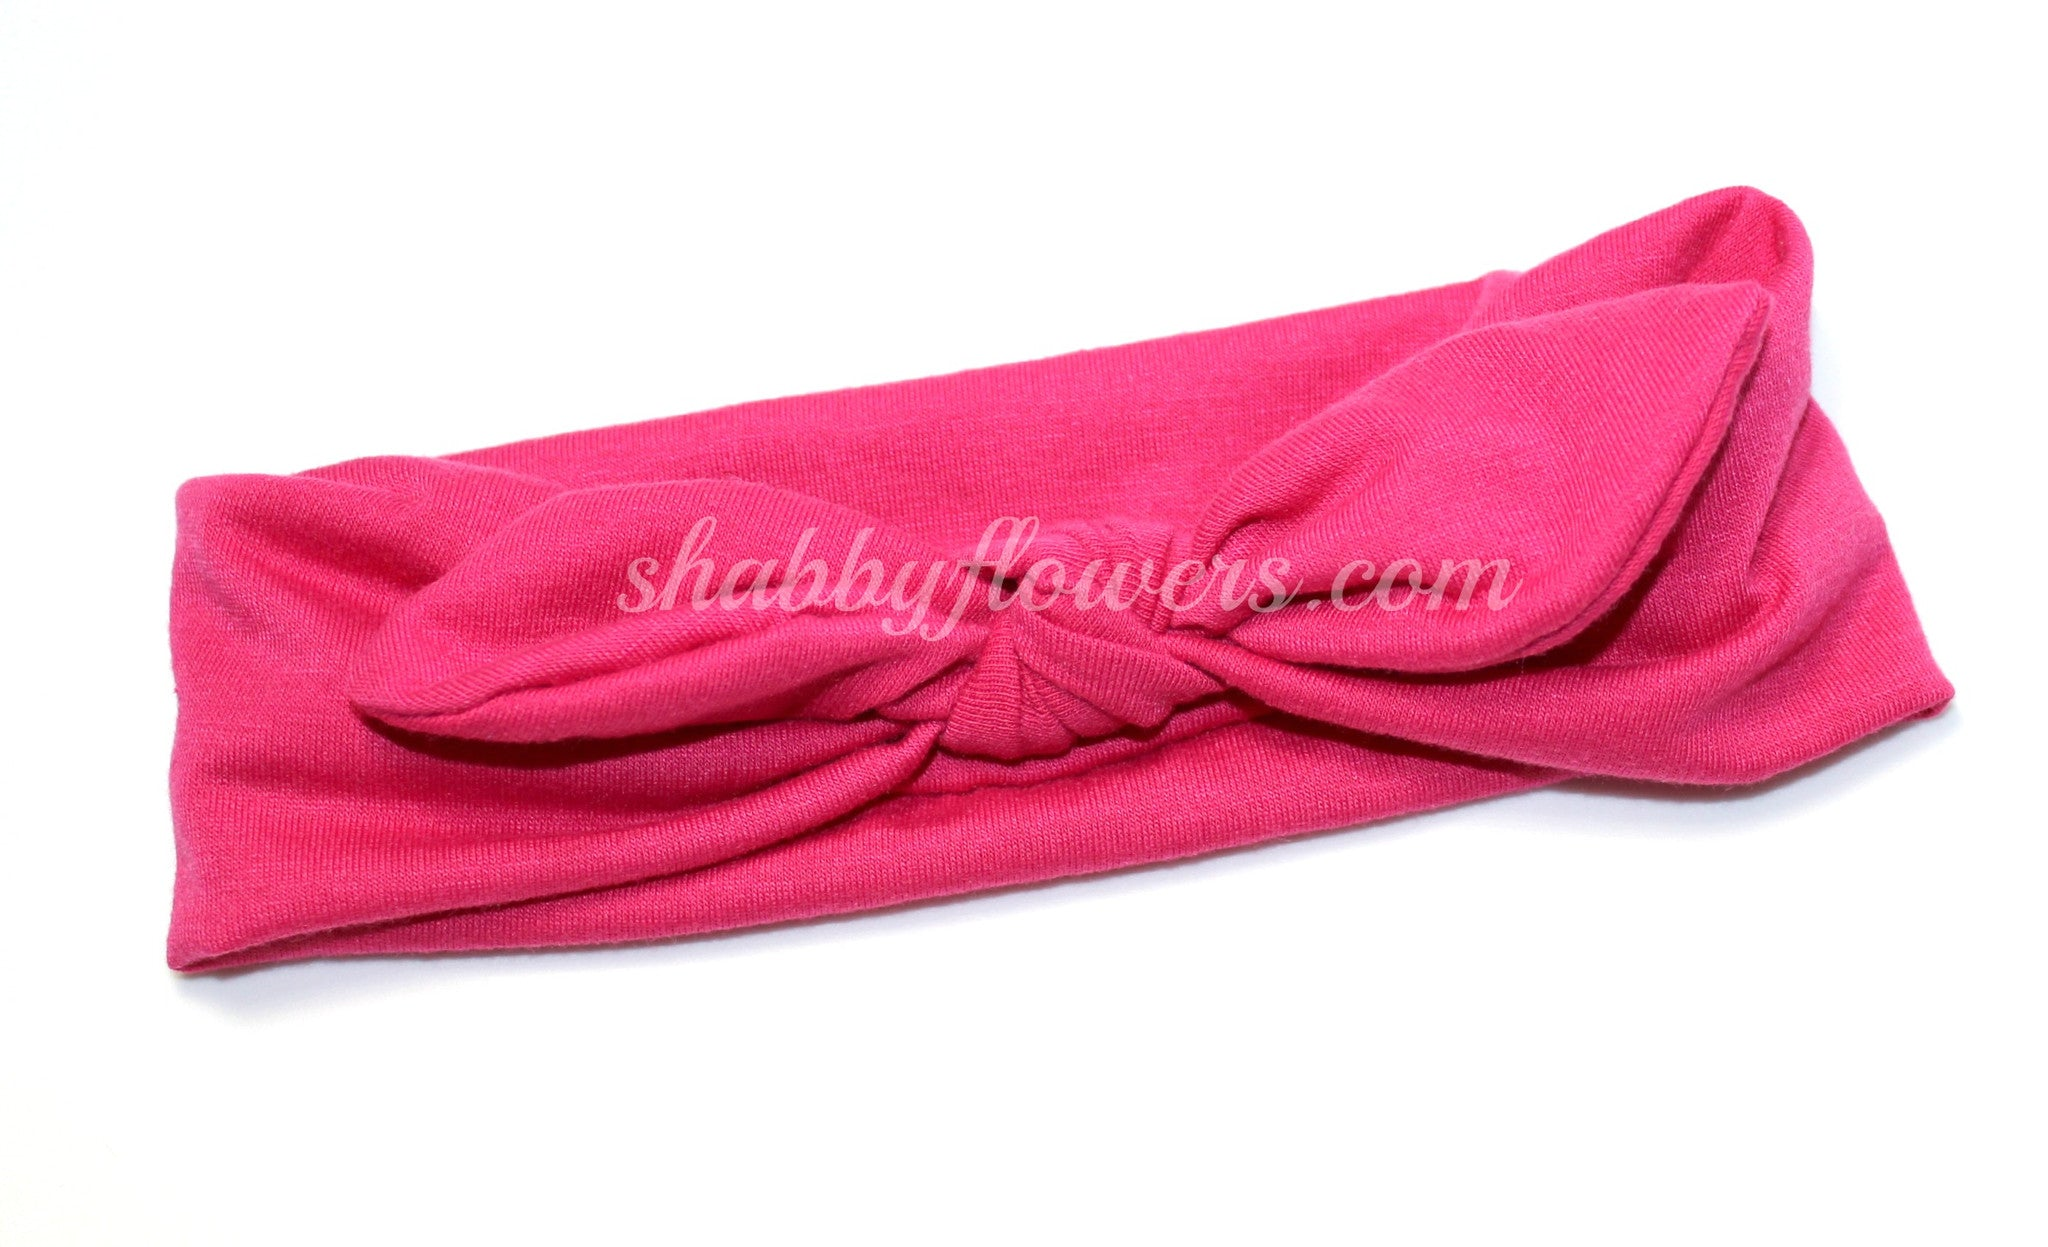 Knot Headband in Fuchsia- Small - shabbyflowers.com